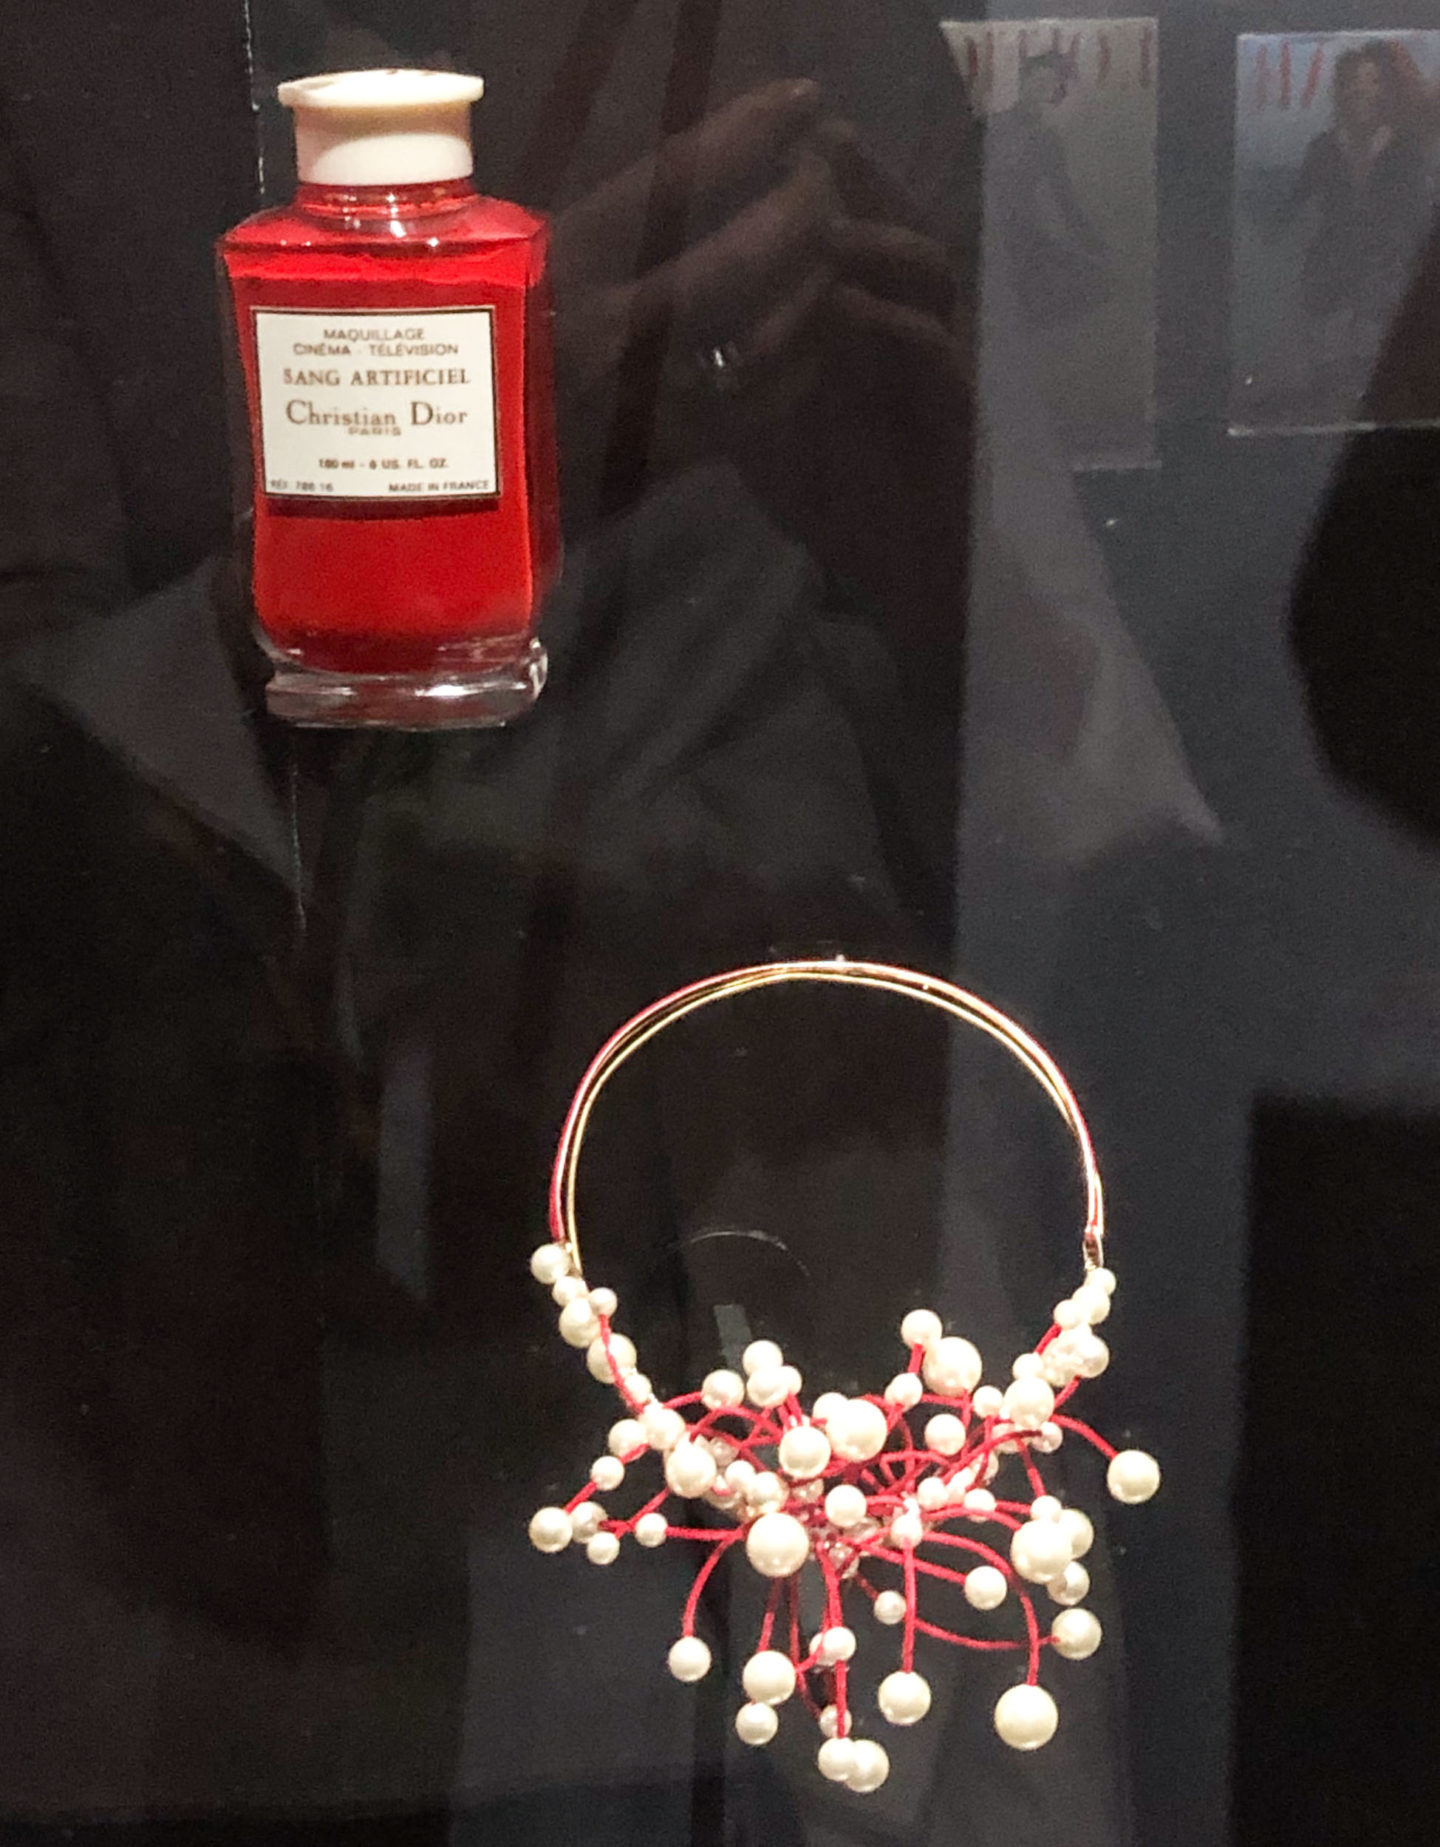 Christian Dior nail polish and costume jewellery